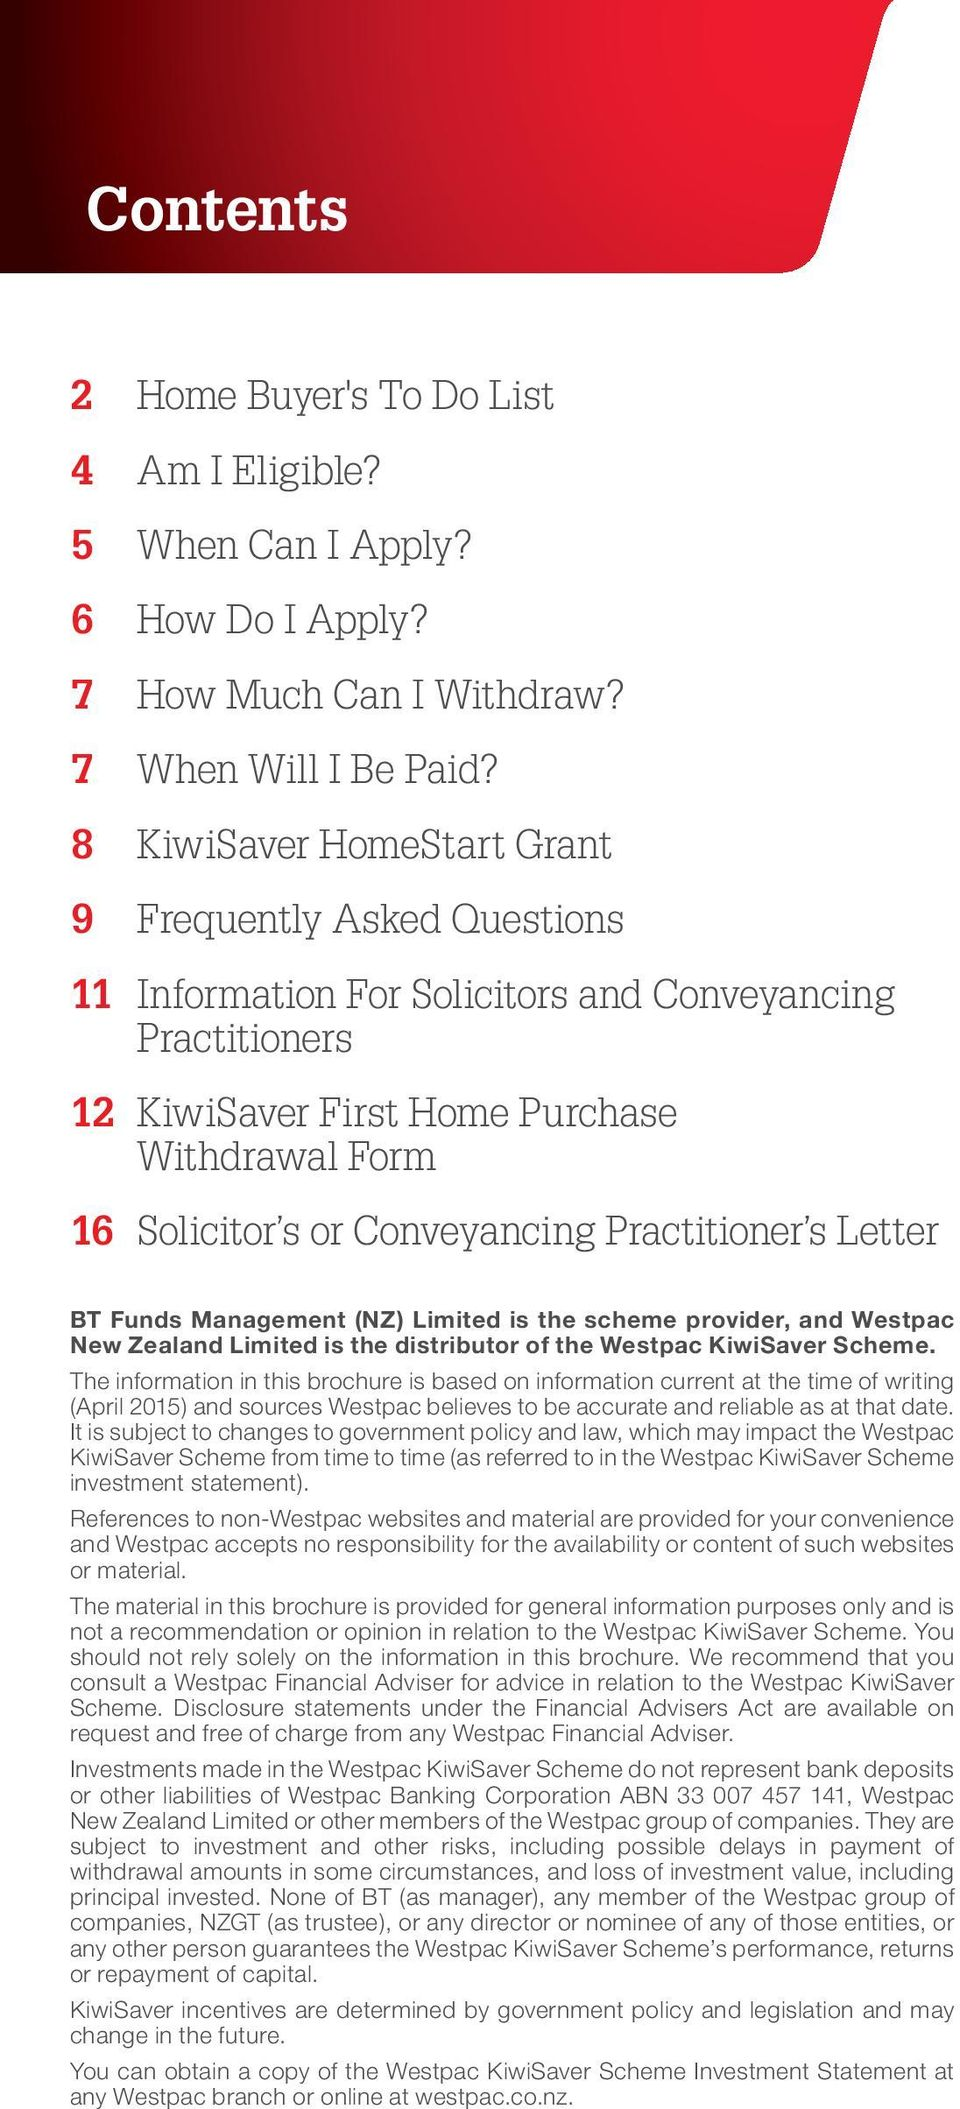 Practitioner s Letter BT Funds Management (NZ) Limited is the scheme provider, and Westpac New Zealand Limited is the distributor of the Westpac KiwiSaver Scheme.